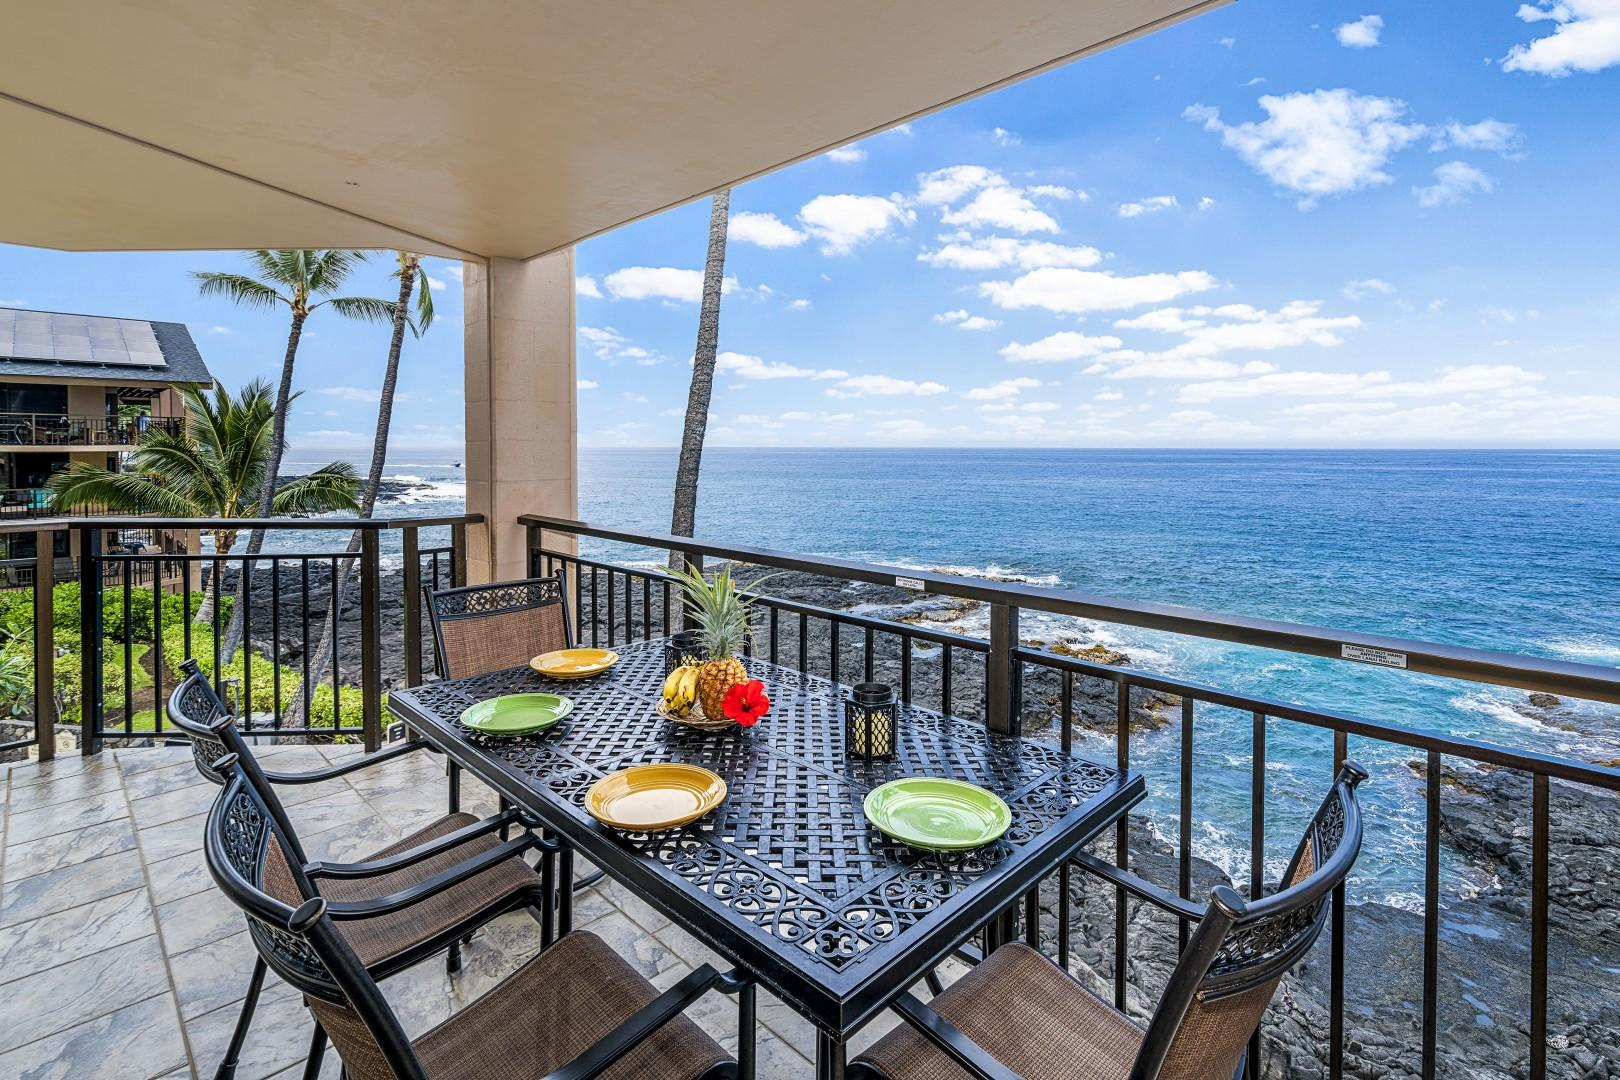 Breath taking ocean side dining for 4!